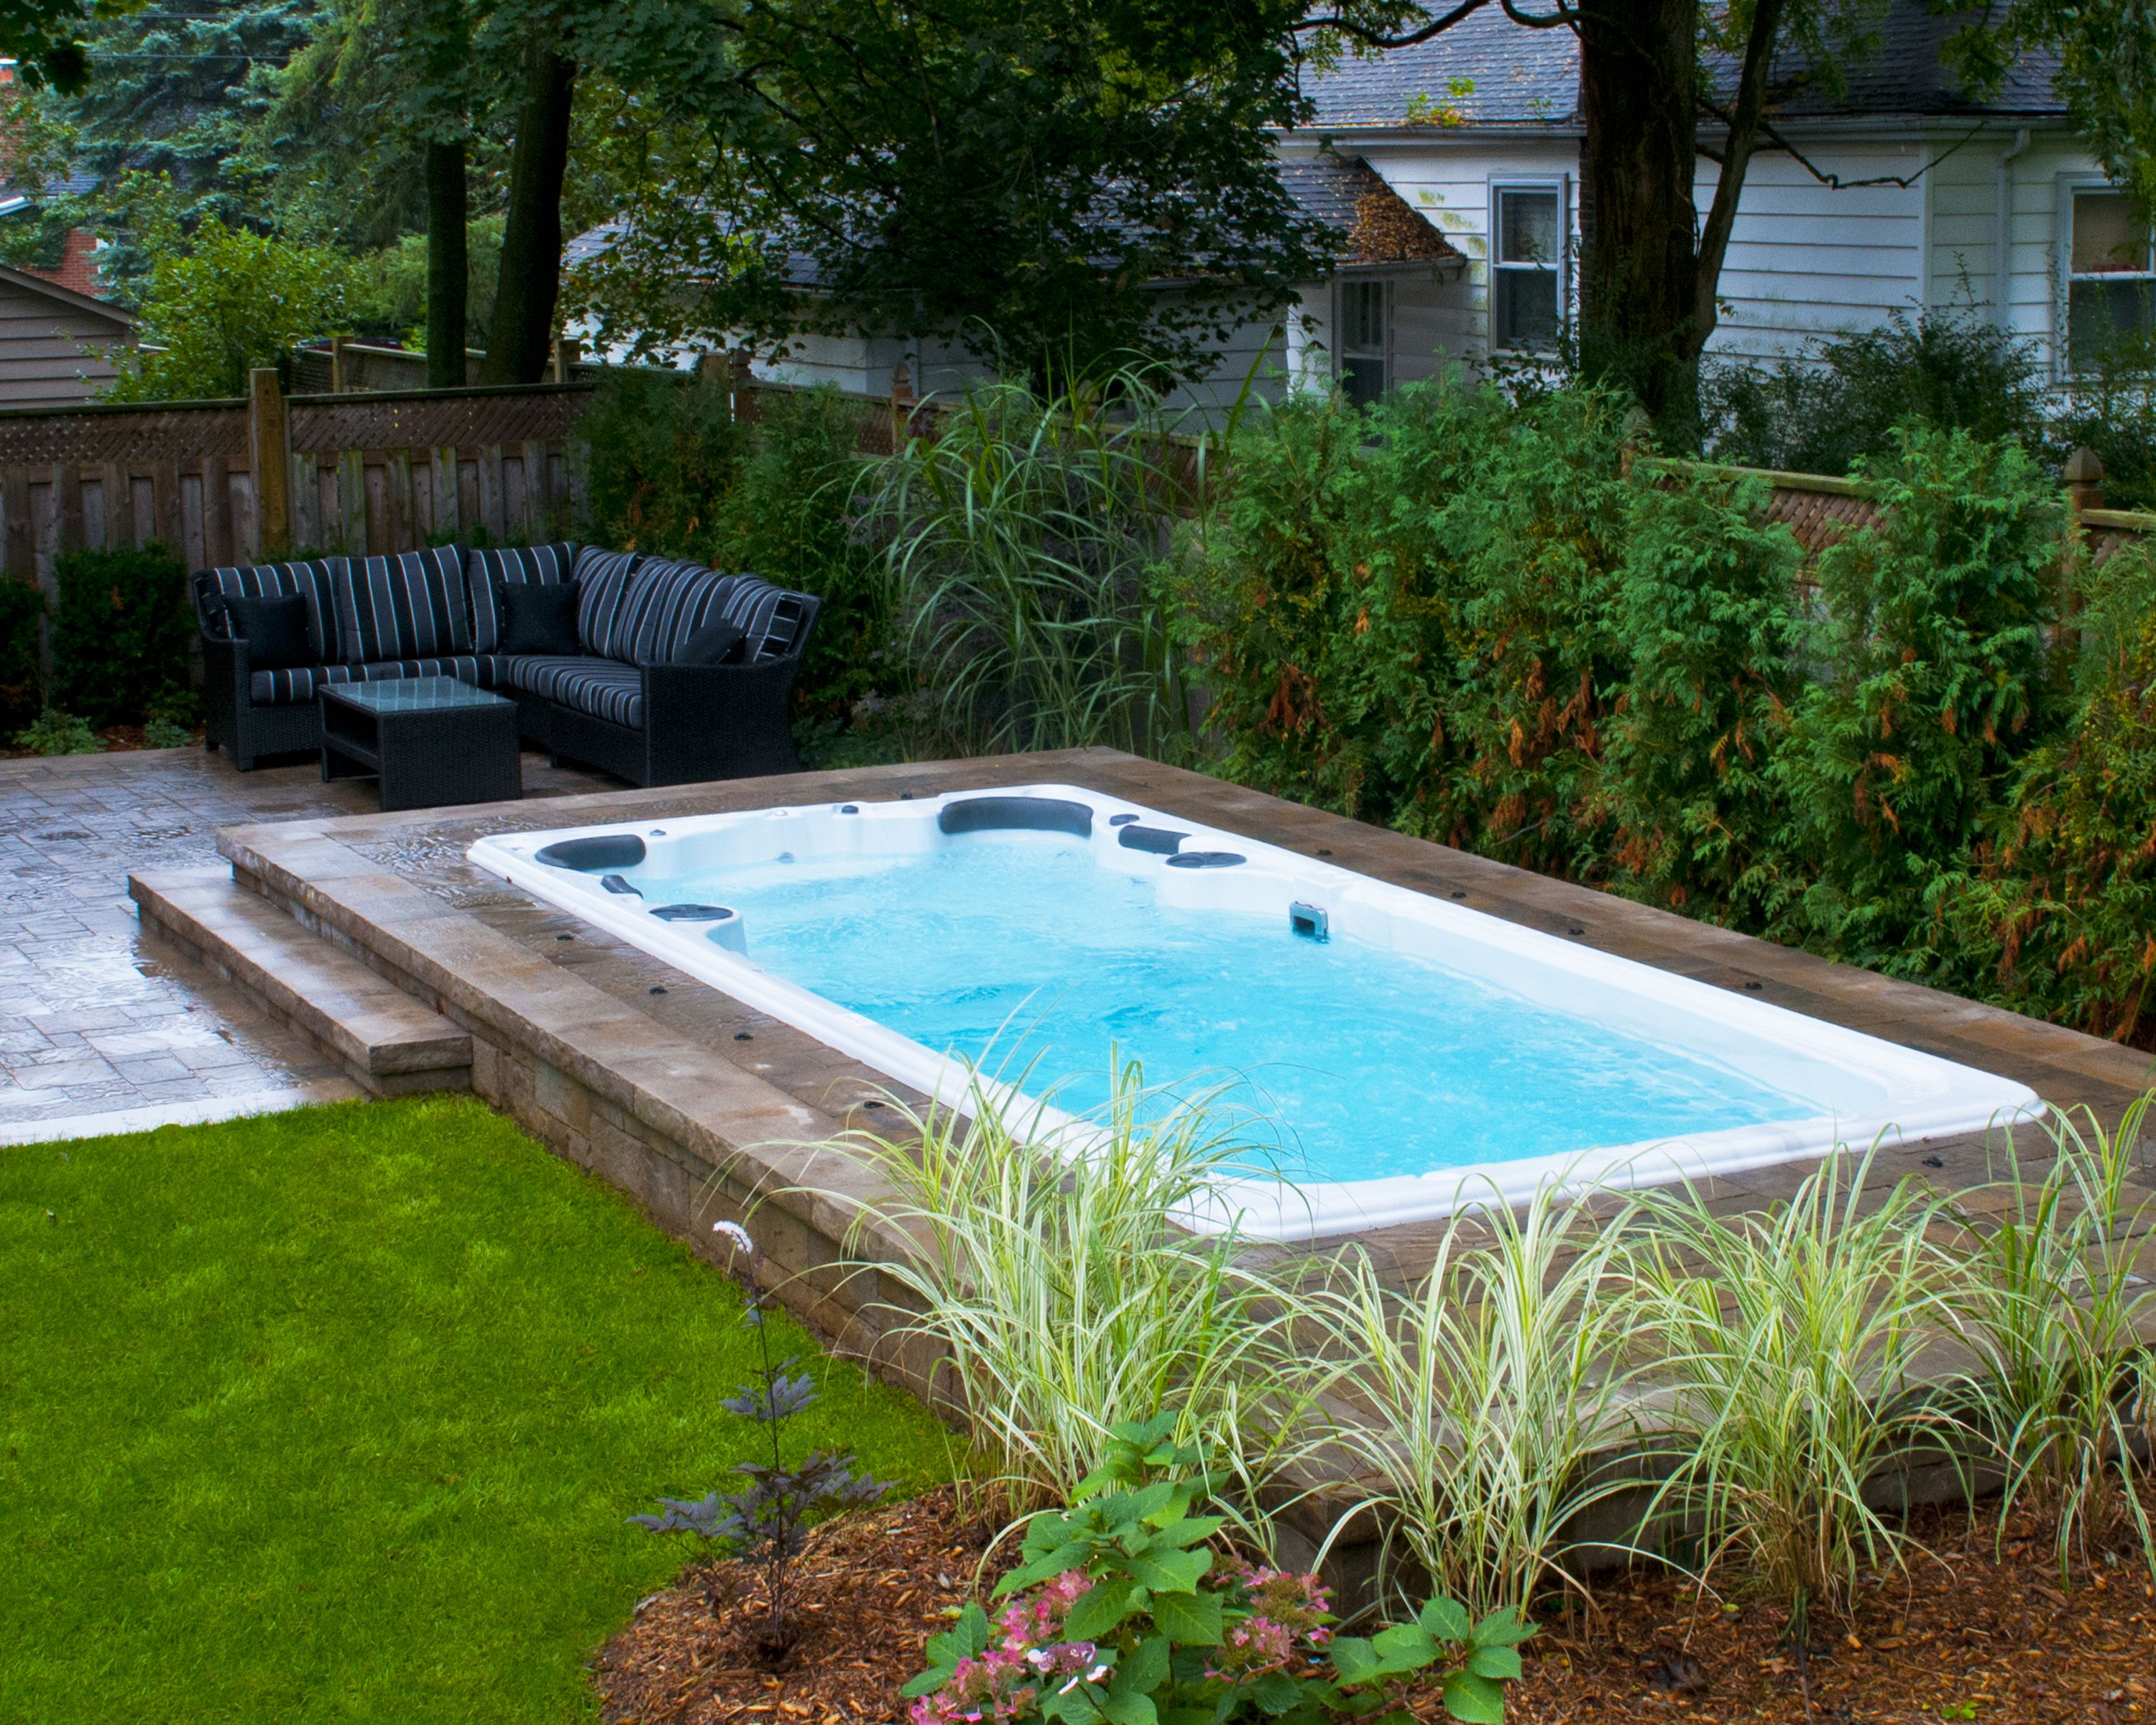 Hydropool Self Cleaning Swim Spa Installed In Ground With Stone Deck Learn More About Hydropool